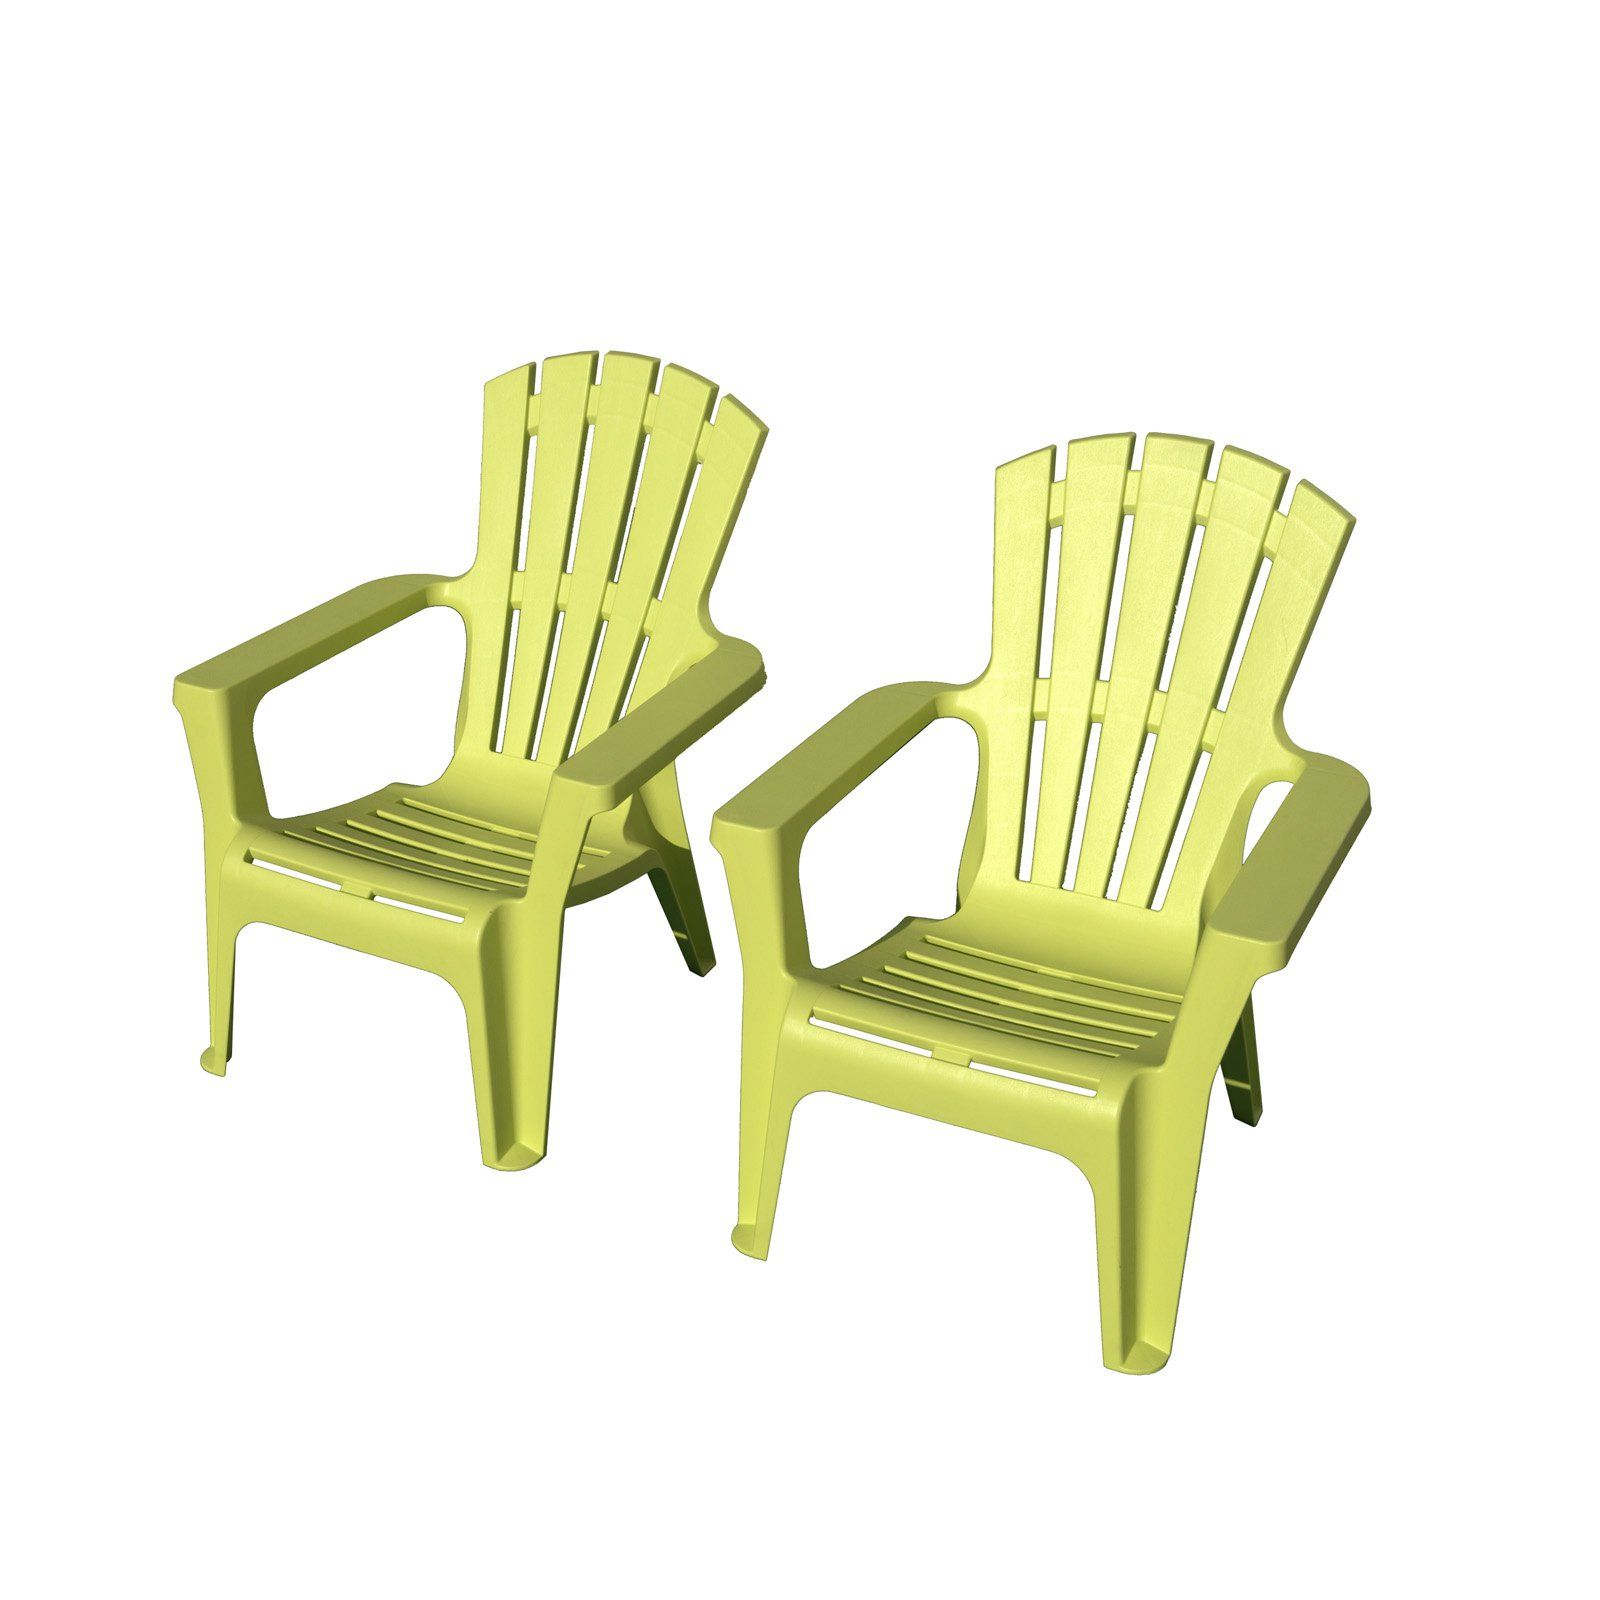 Incredible Outdoor Incadozo Maryland Polypropylene Adirondack Chair Gmtry Best Dining Table And Chair Ideas Images Gmtryco